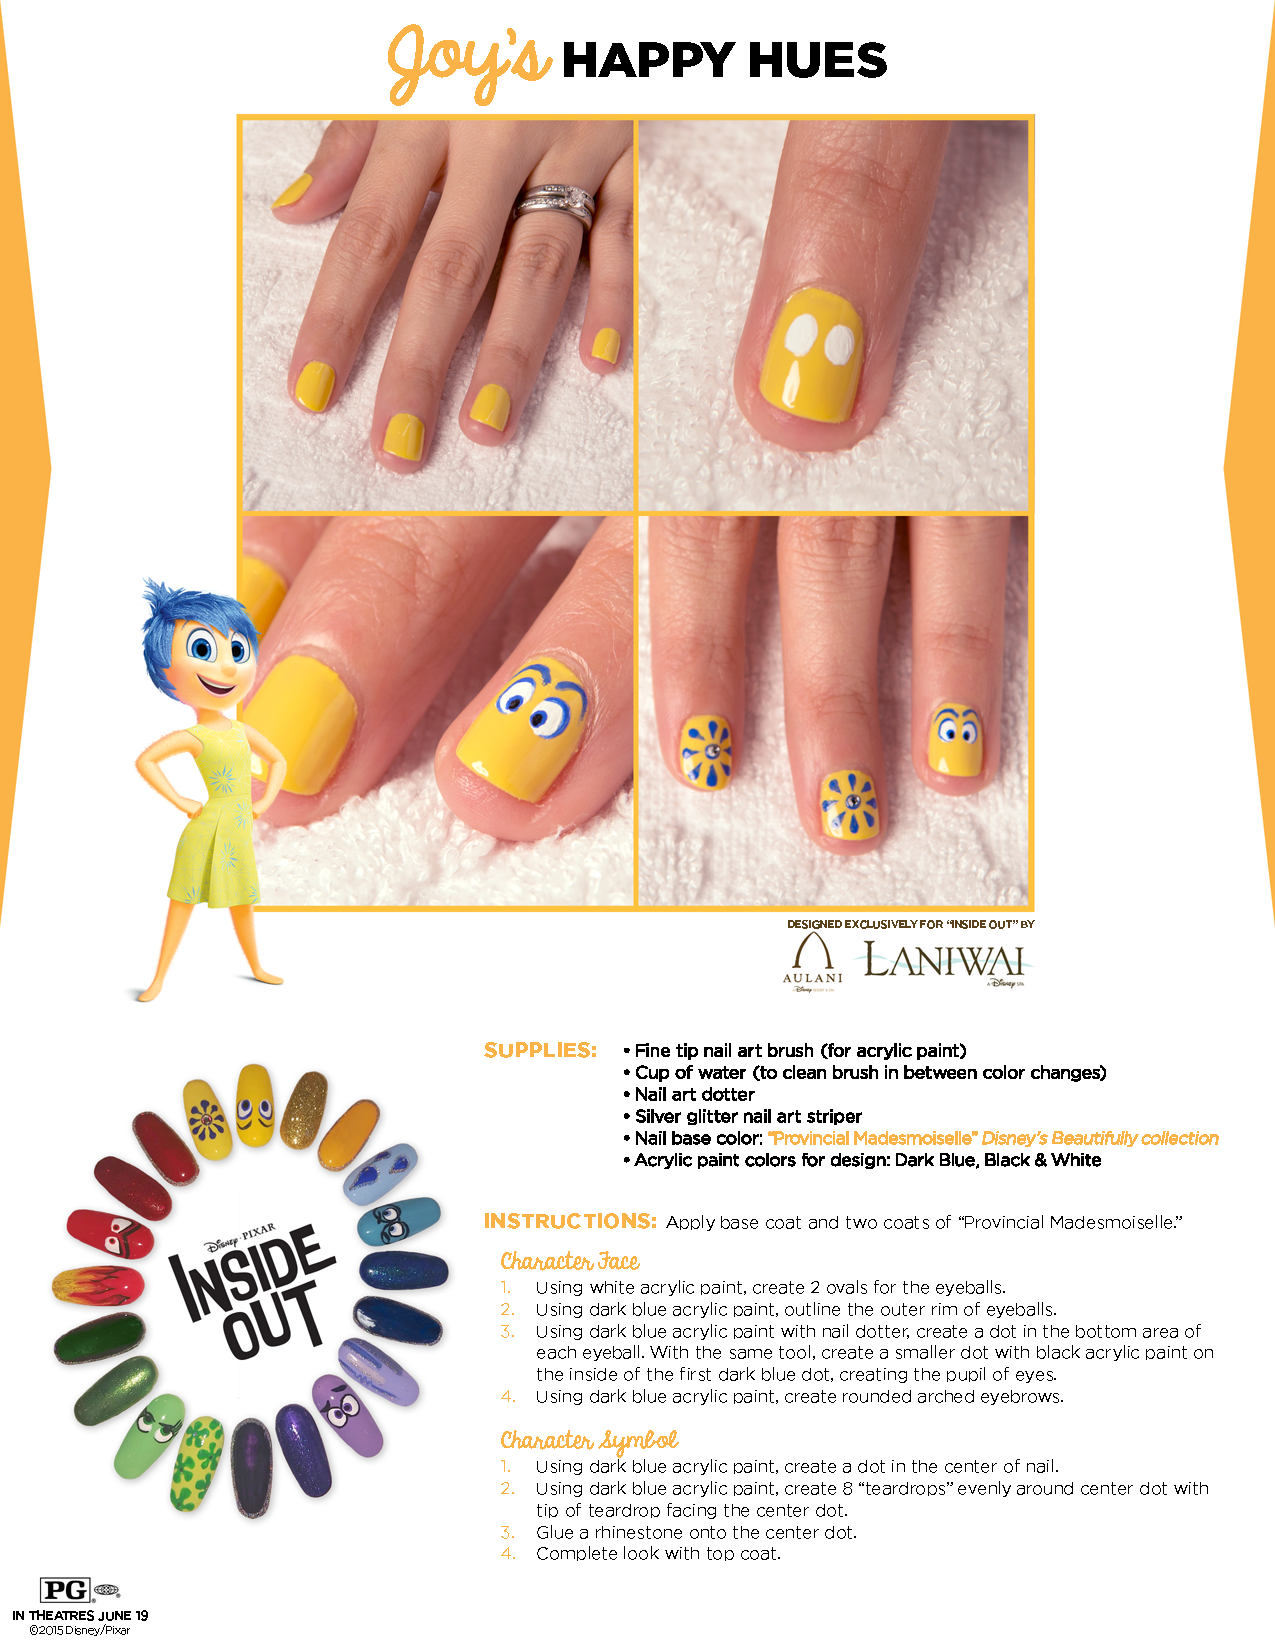 Get emotional with this #InsideOut inspired nail art tutorial ...